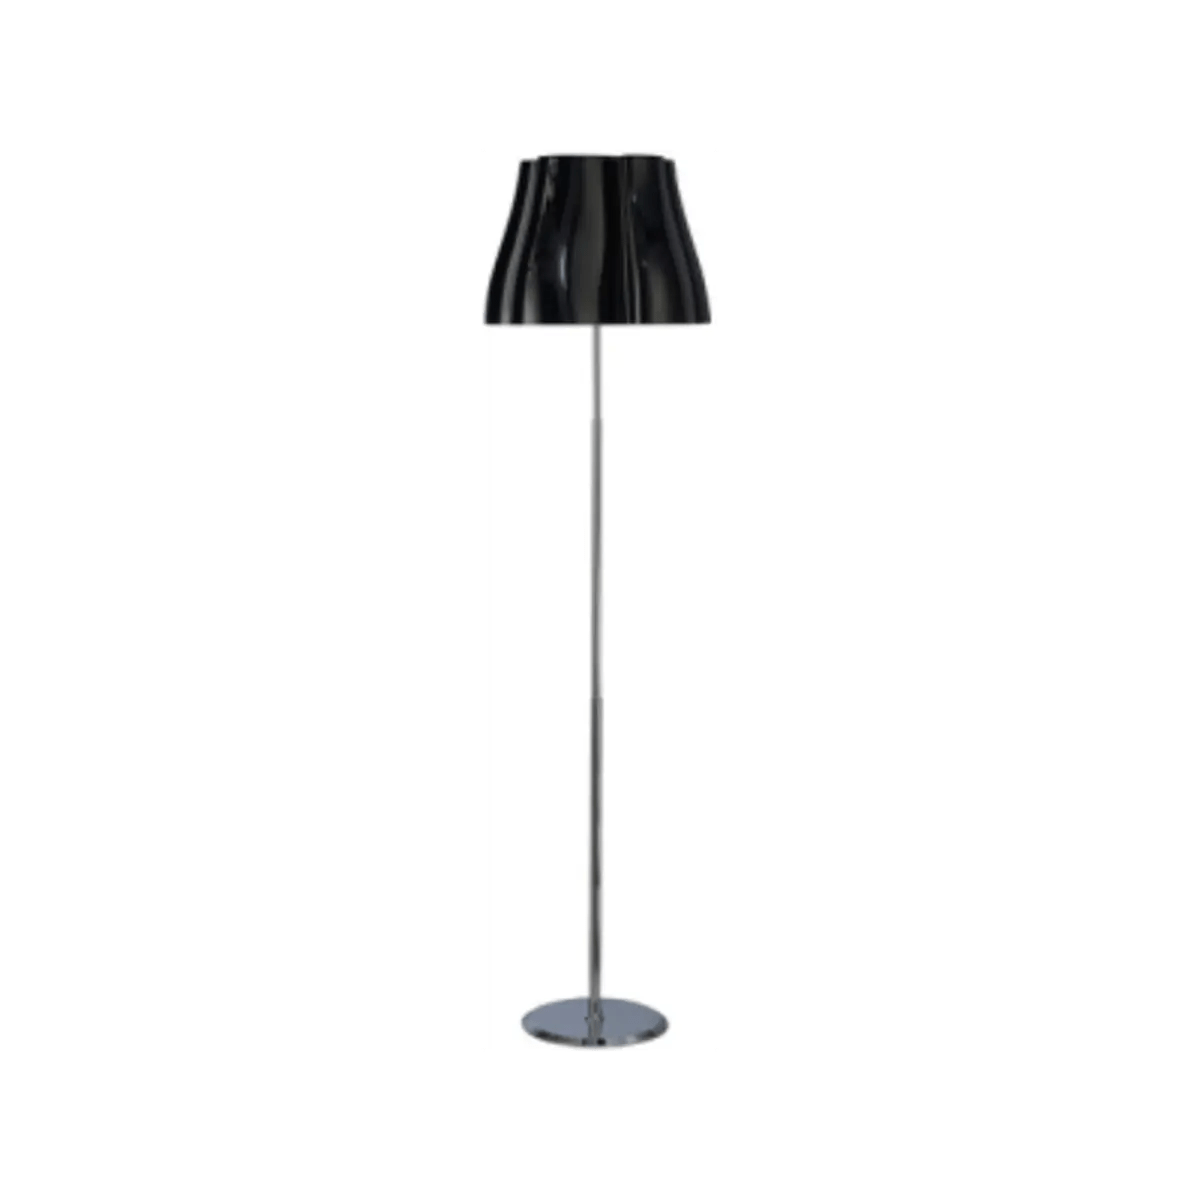 Santiago Sevillano Miss 3723 By Mantra Floor Lamps By Mantra